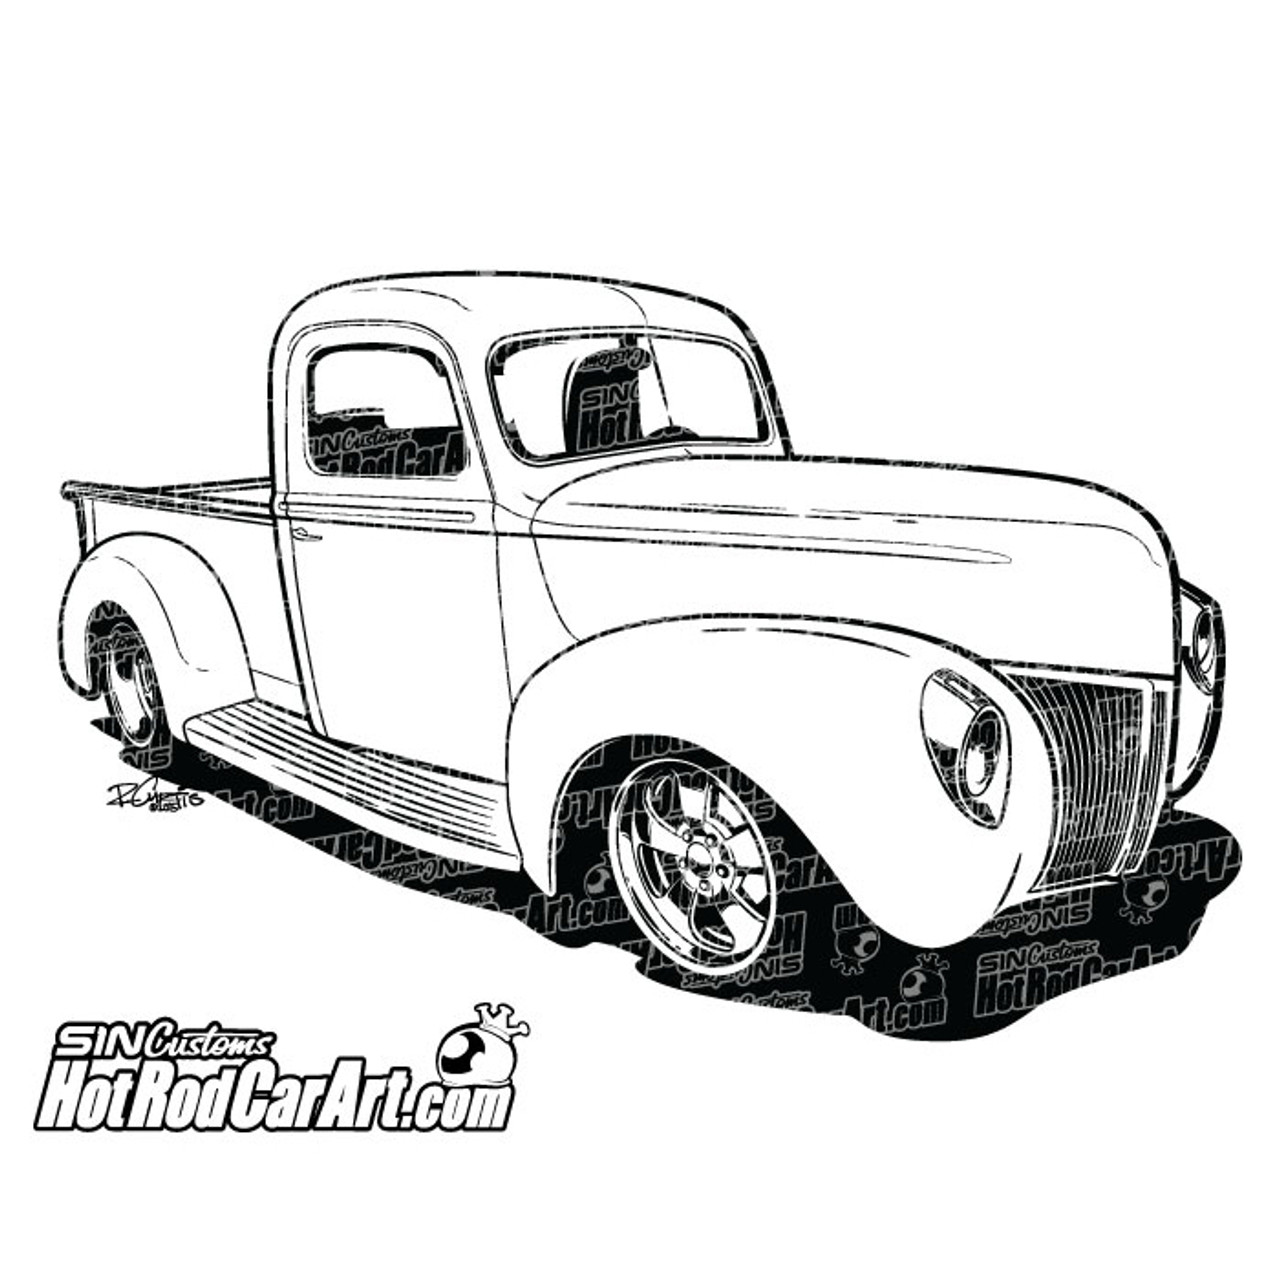 small resolution of 1940 ford truck 2015 ryan curtis hotrodcarart com